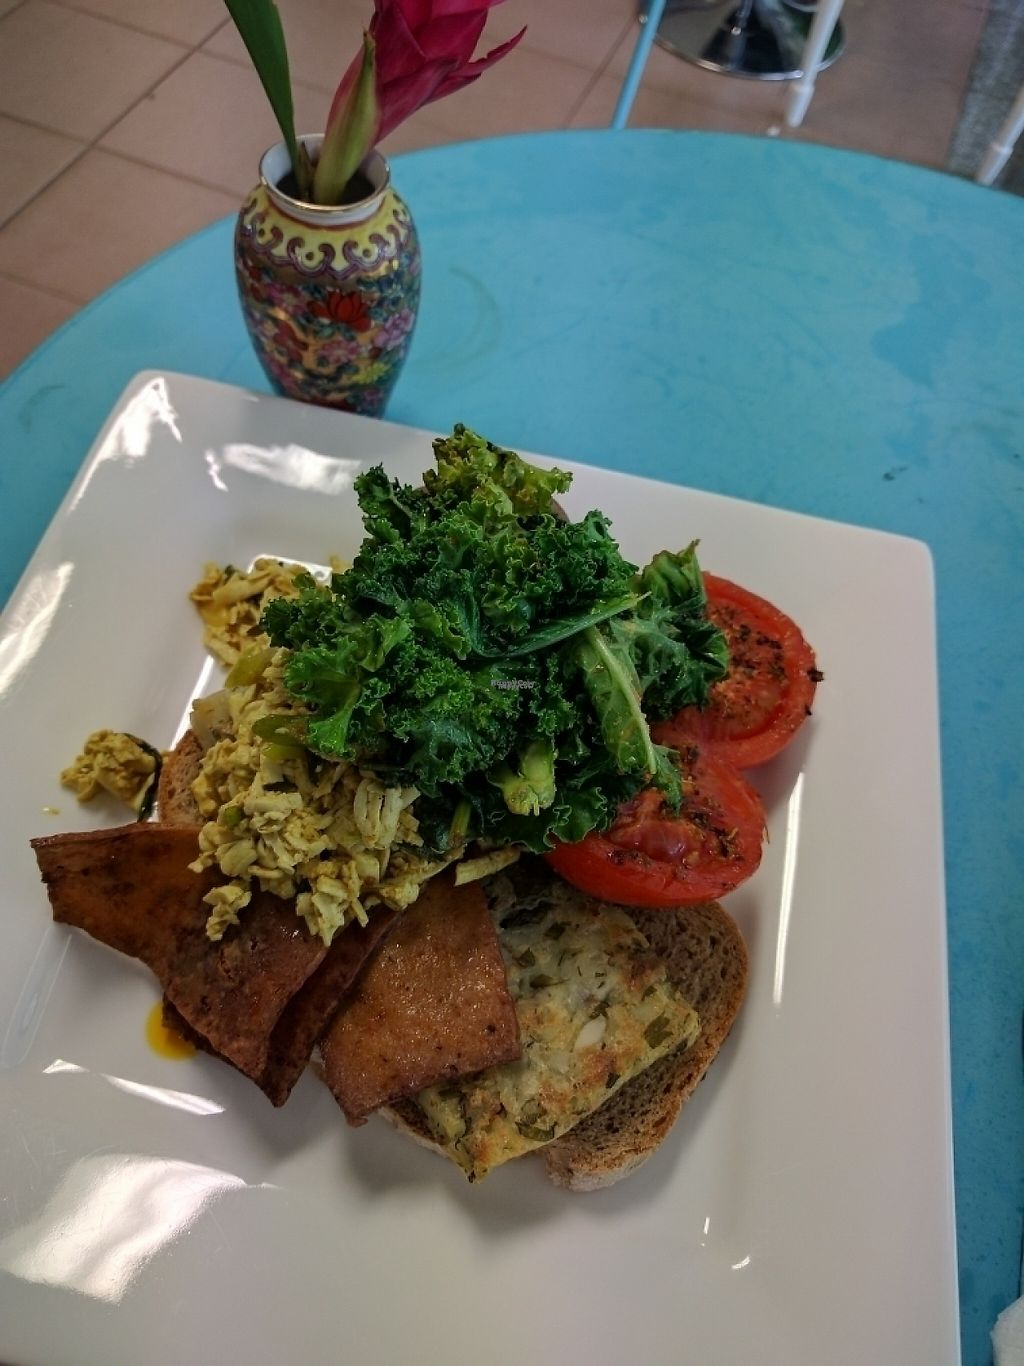 """Photo of Kings Wholefood Artisan  by <a href=""""/members/profile/VeganSoapDude"""">VeganSoapDude</a> <br/>Big Brekkie Tofu Scramble <br/> February 11, 2017  - <a href='/contact/abuse/image/85769/225126'>Report</a>"""